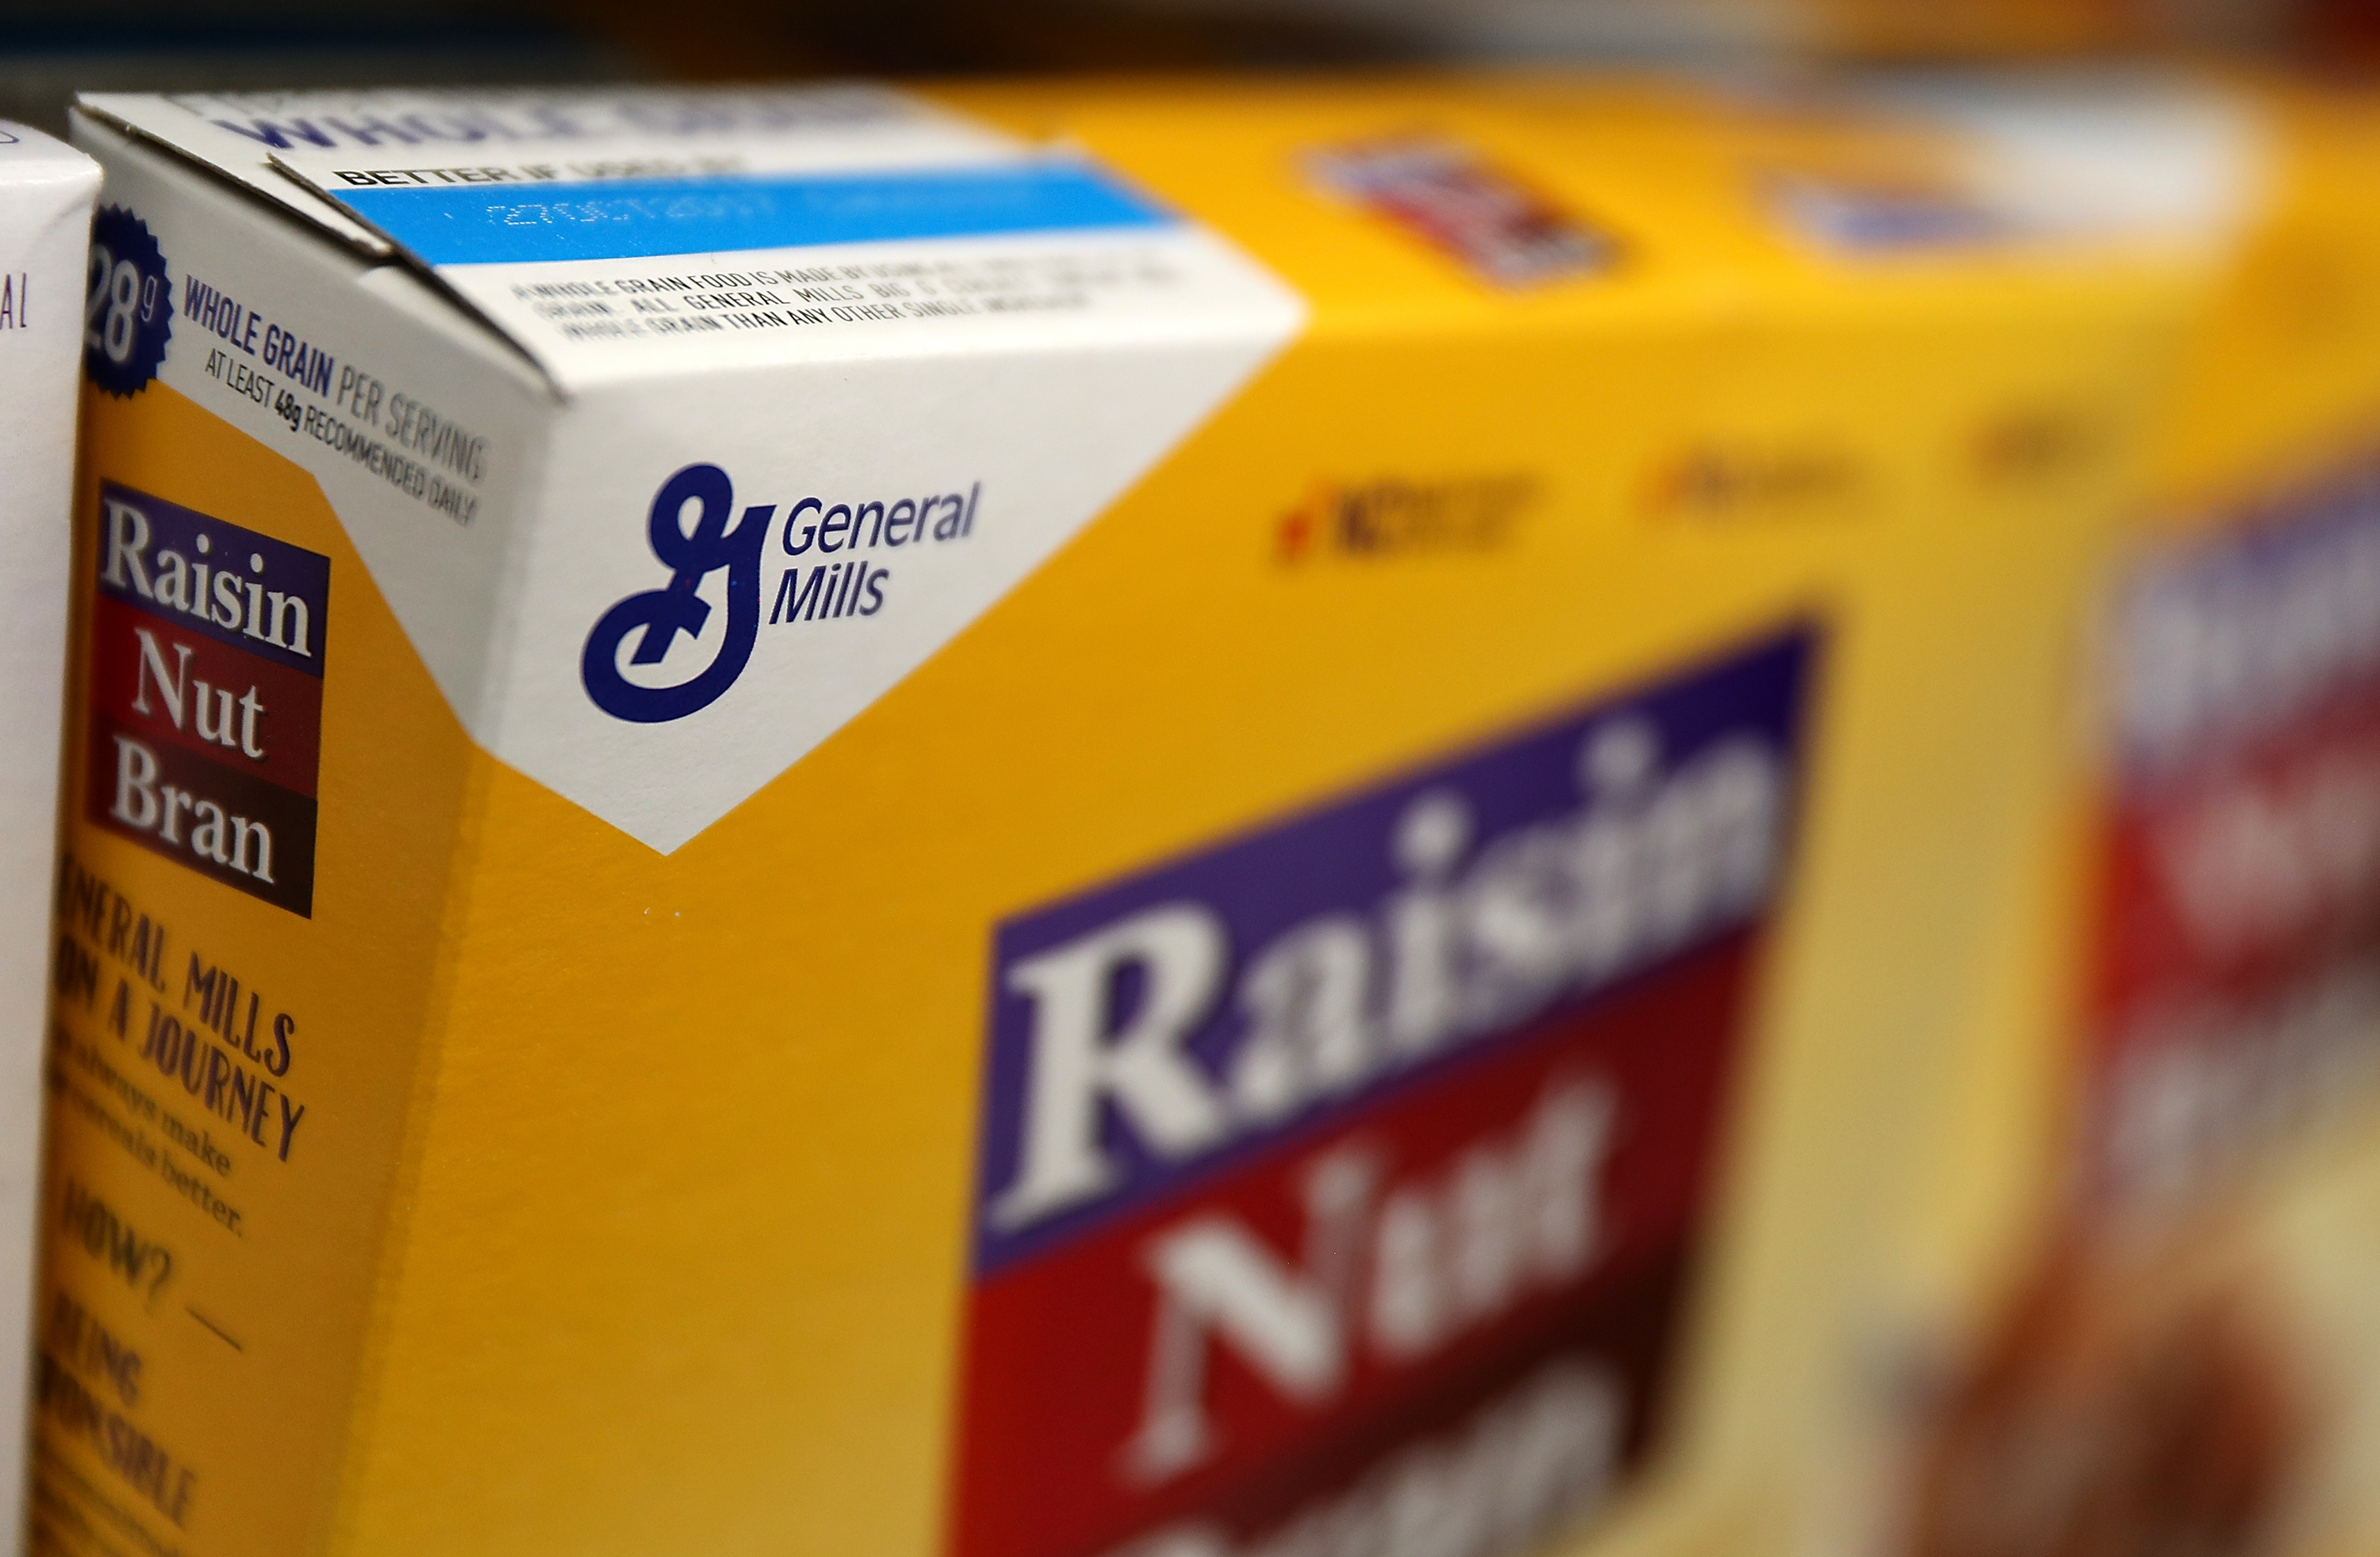 The General Mills logo is displayed on a box of Raisin Nut Bran cereal at Scotty's Market on September 20, 2017 in San Rafael, California. (Photo by Justin Sullivan/Getty Images)